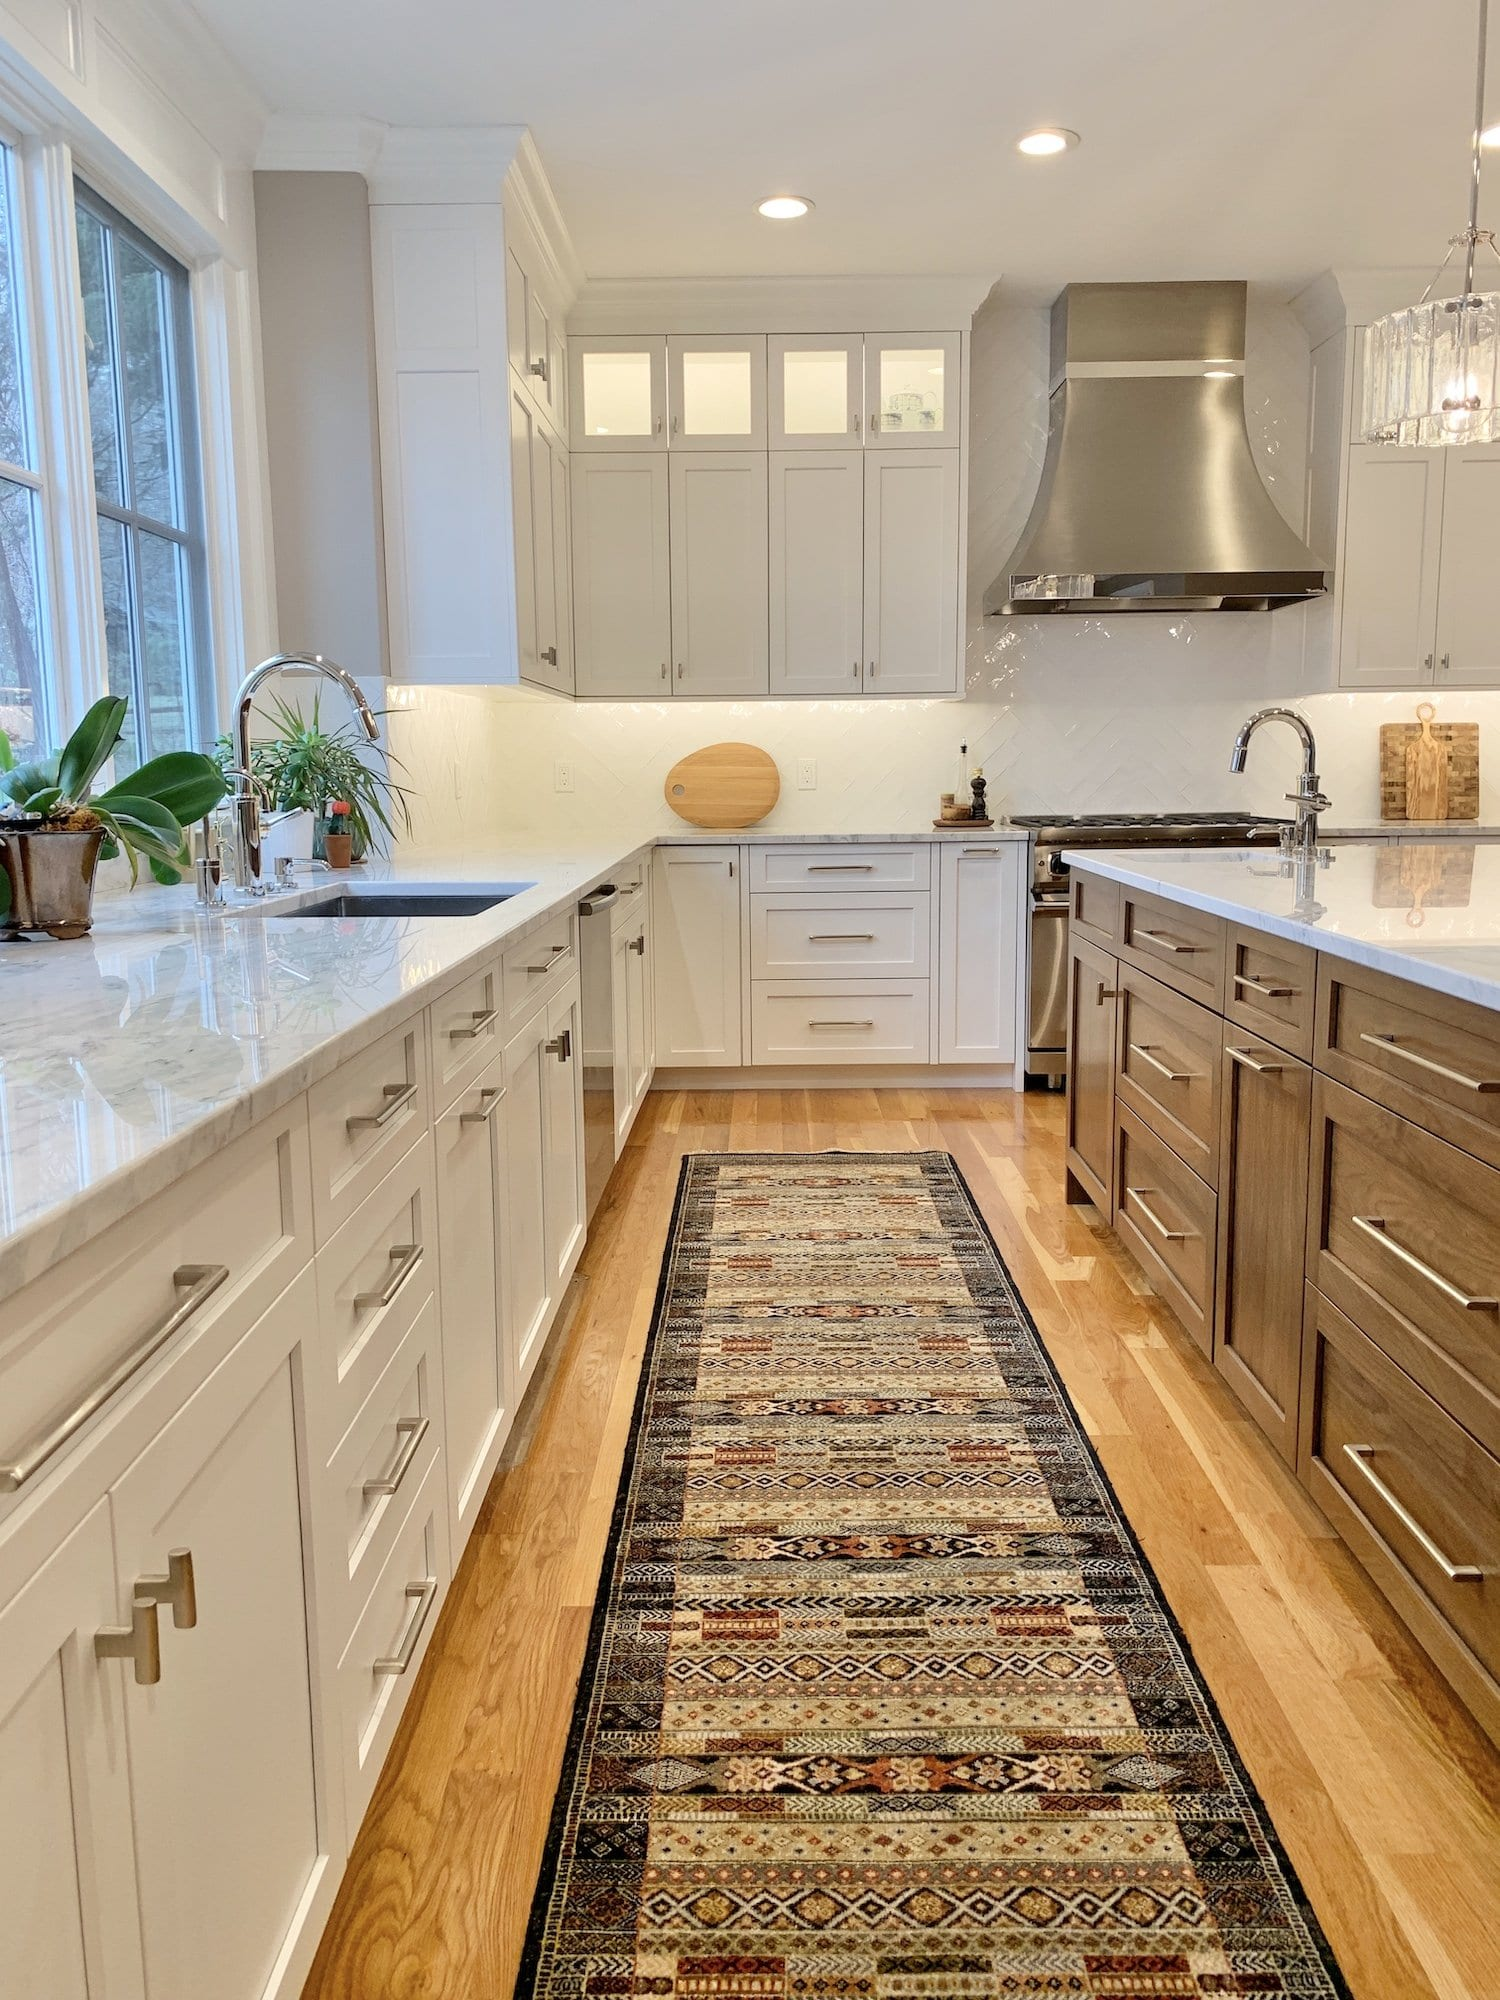 Dean Cabinetry John Dean Custom Cabinetry White Full Access Full Overlay Kitchen Carpet